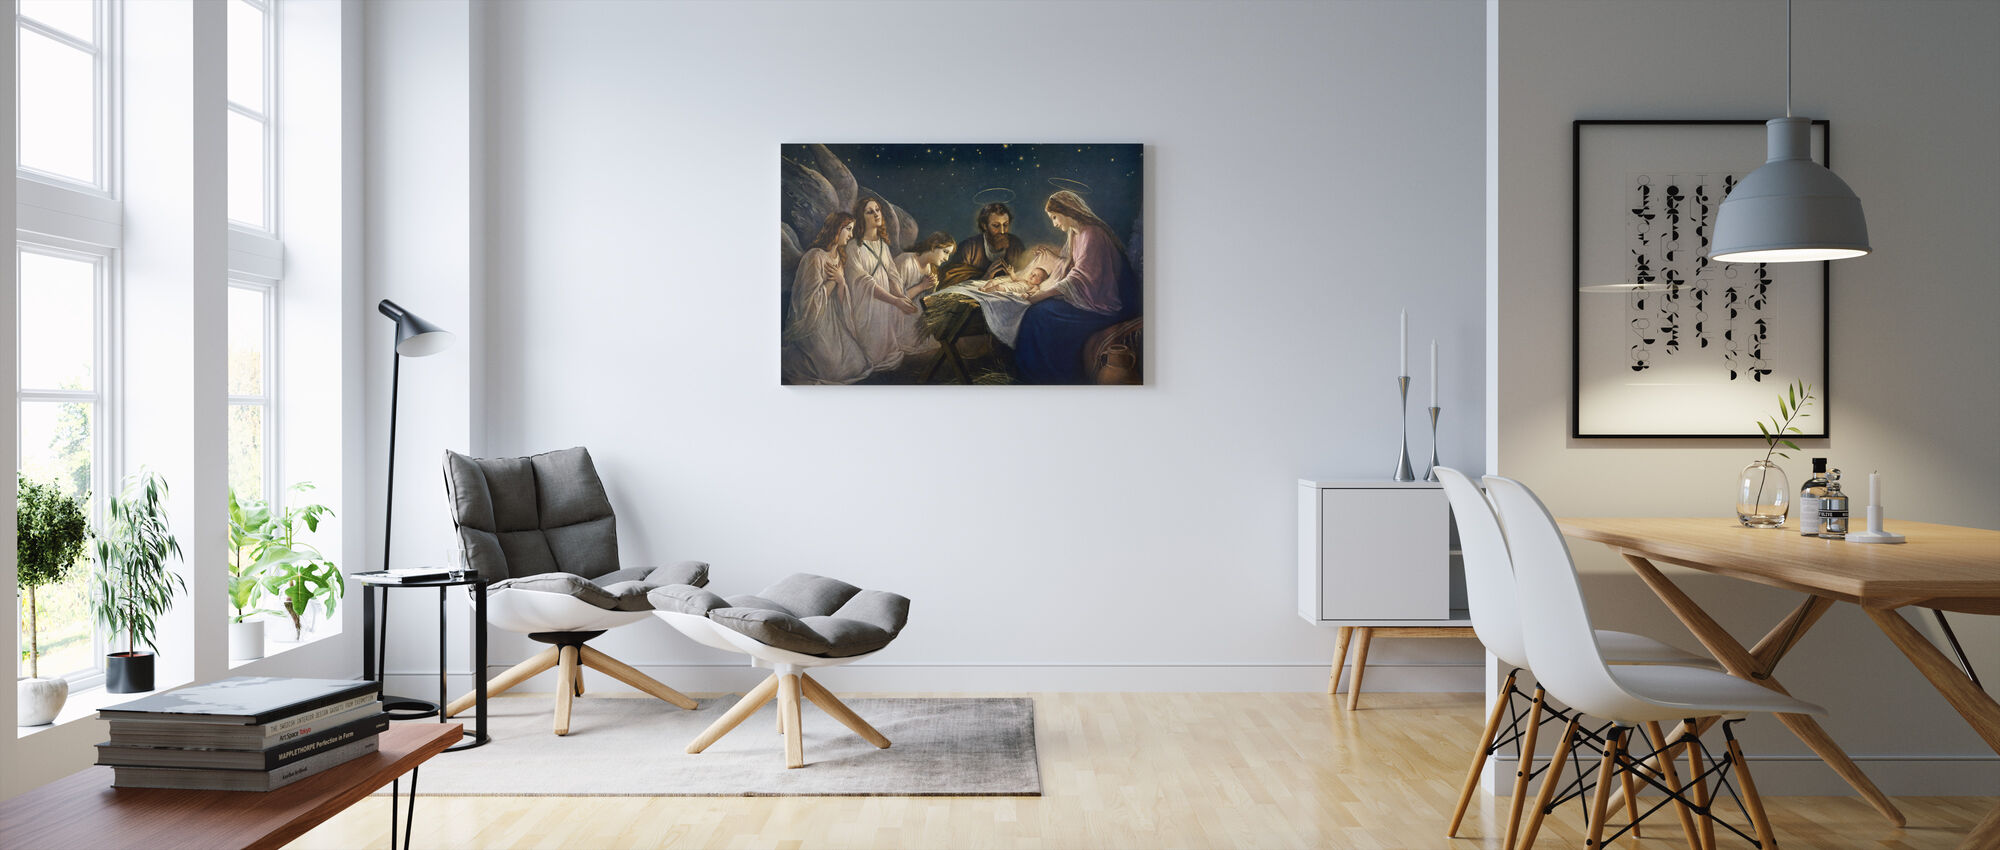 Joseph and Mary - Canvas print - Living Room